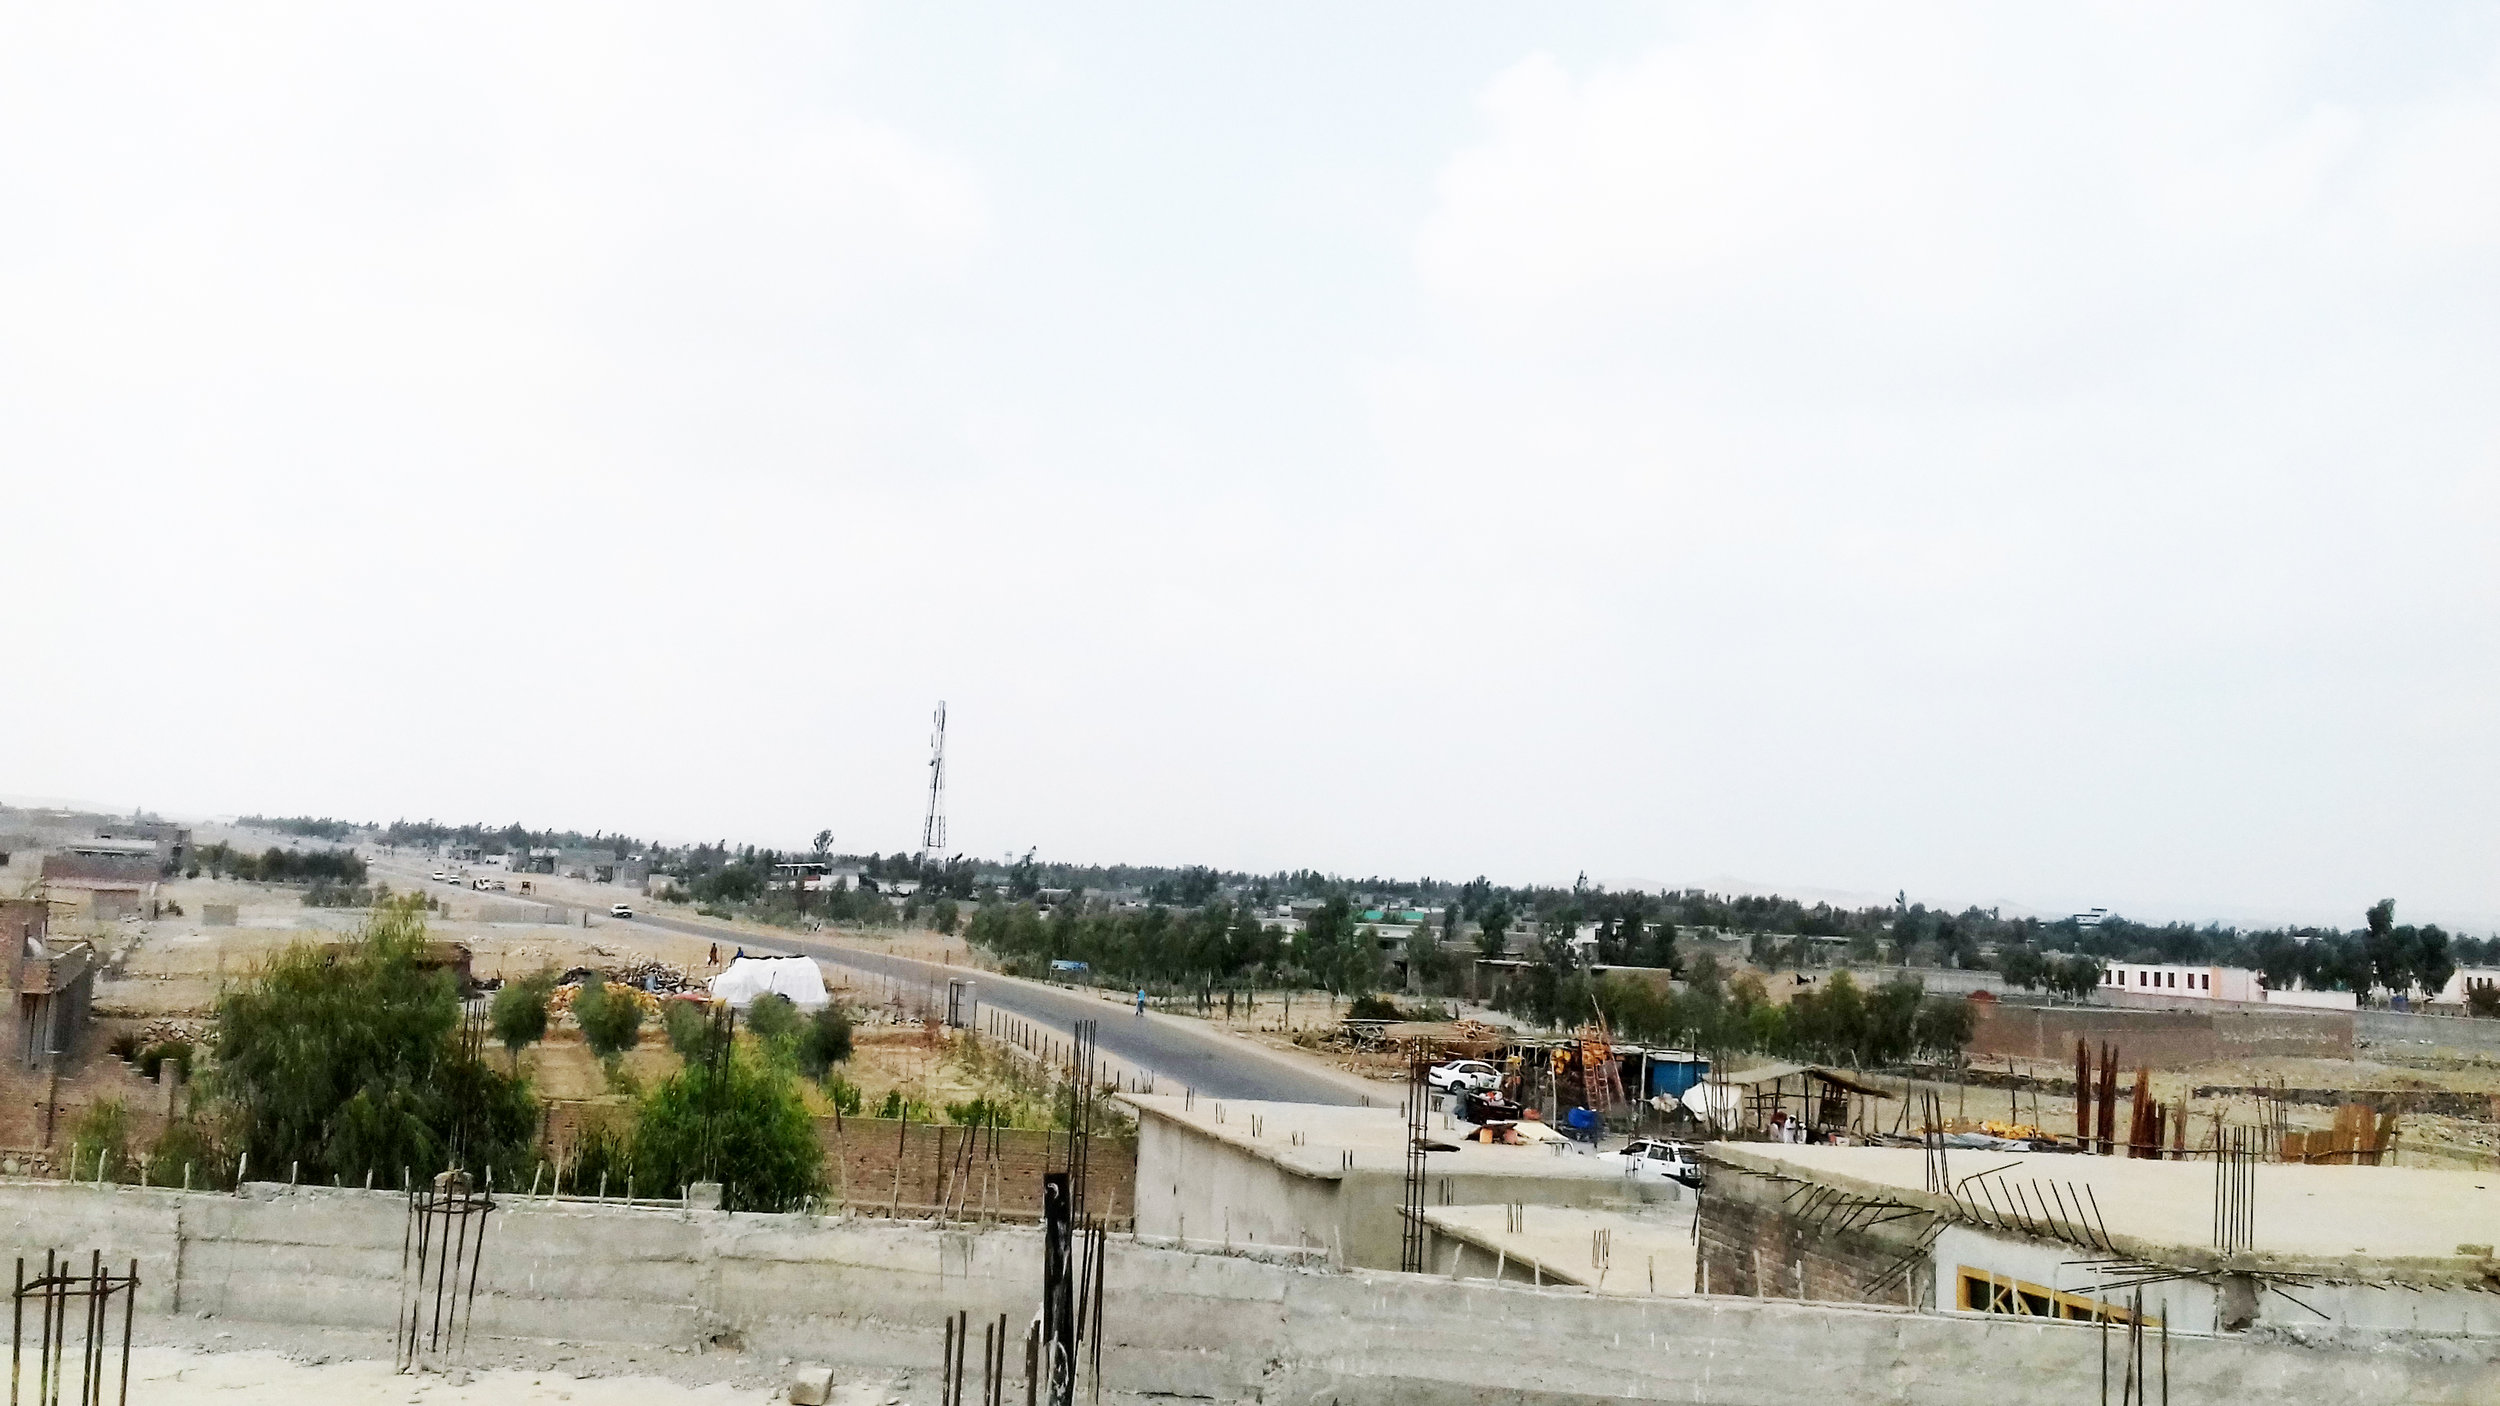 Chamtala Land Allocation Scheme (LAS) site. Photo by author.